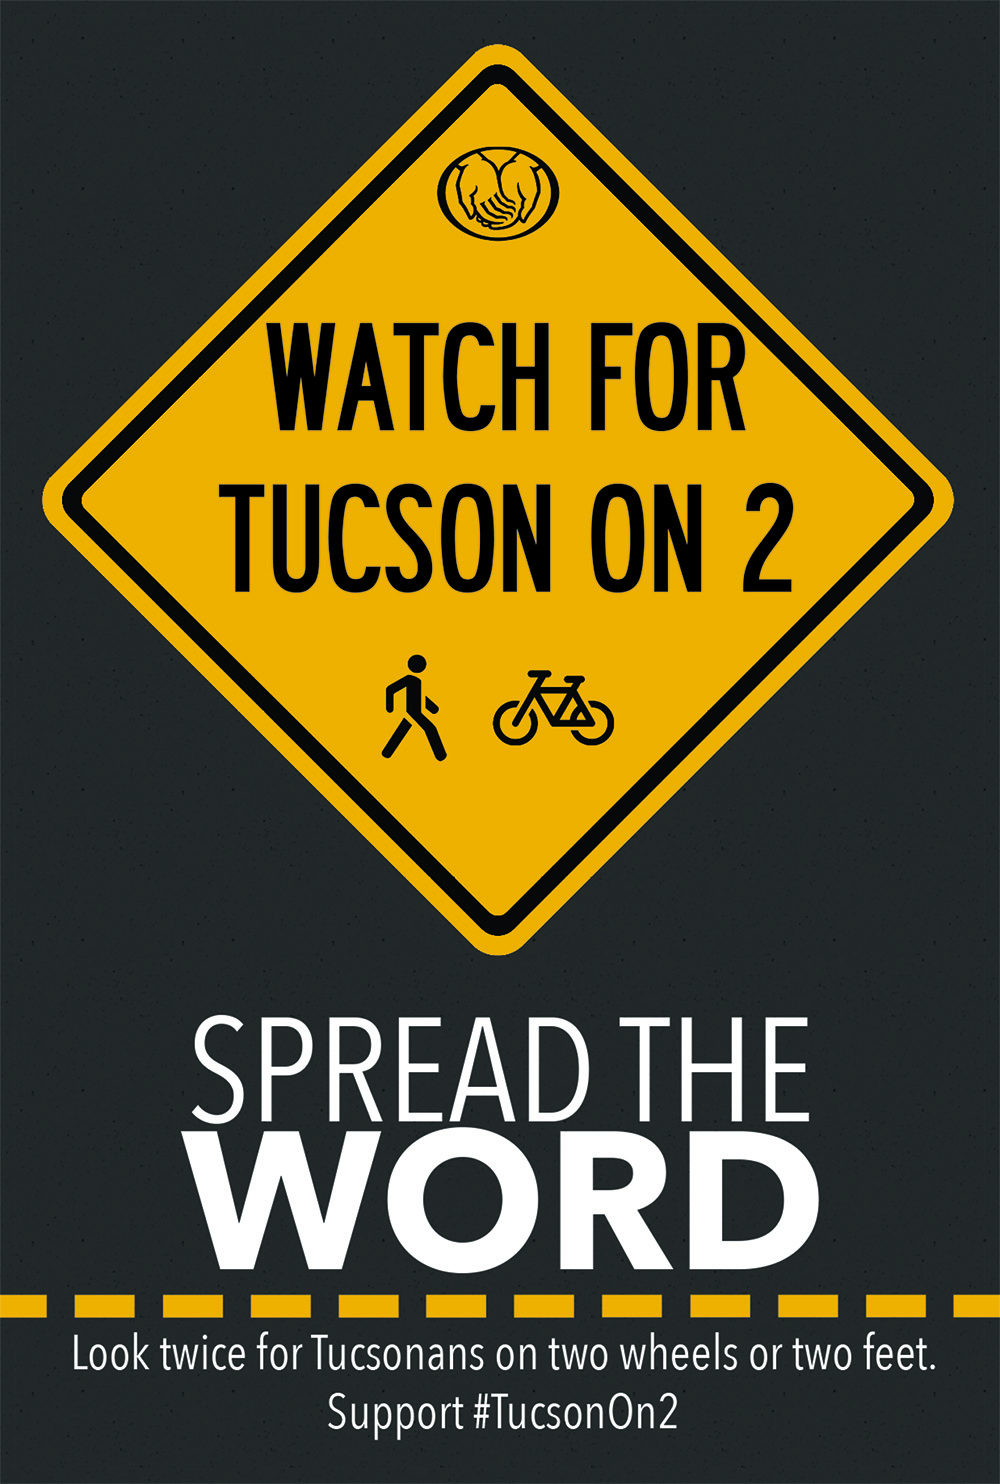 Tucson on 2 Window Cling